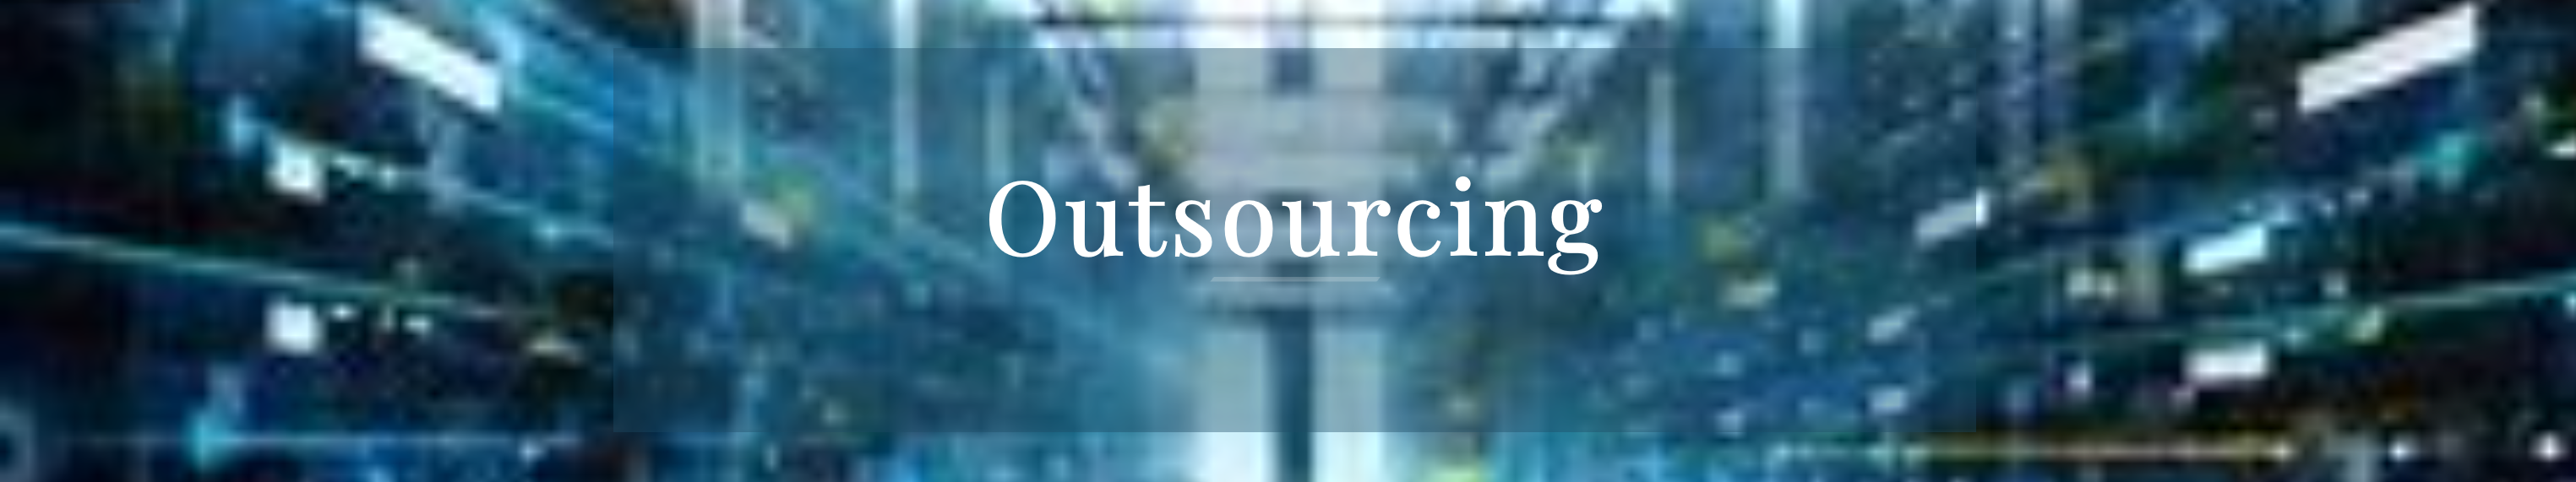 Outsourcingpng